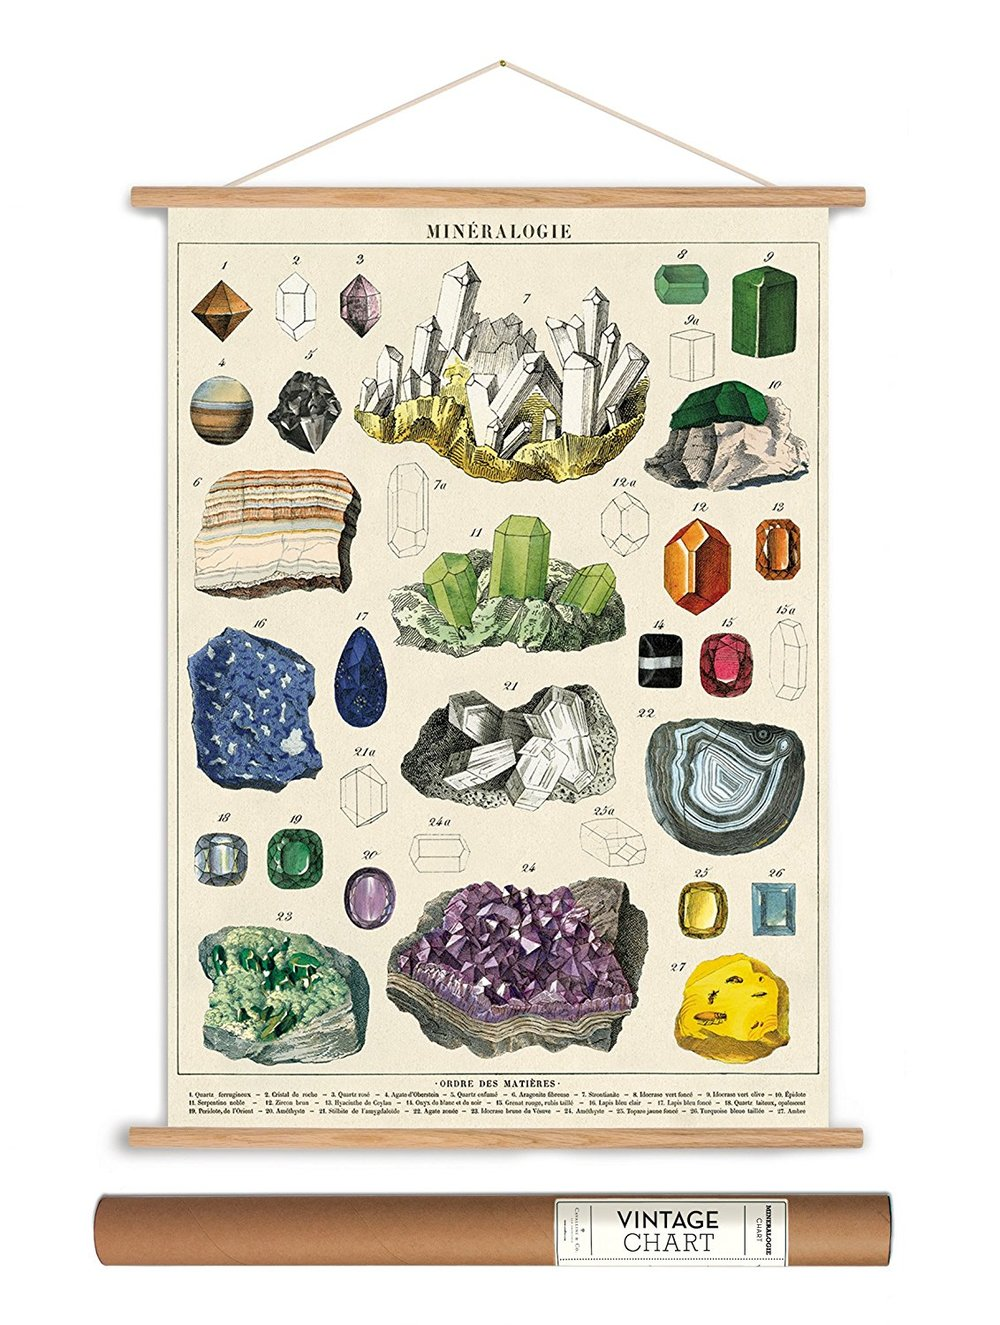 Cavallini Papers Mineralogie Vintage Style Poster £23.53, Cavallini Papers and Co.